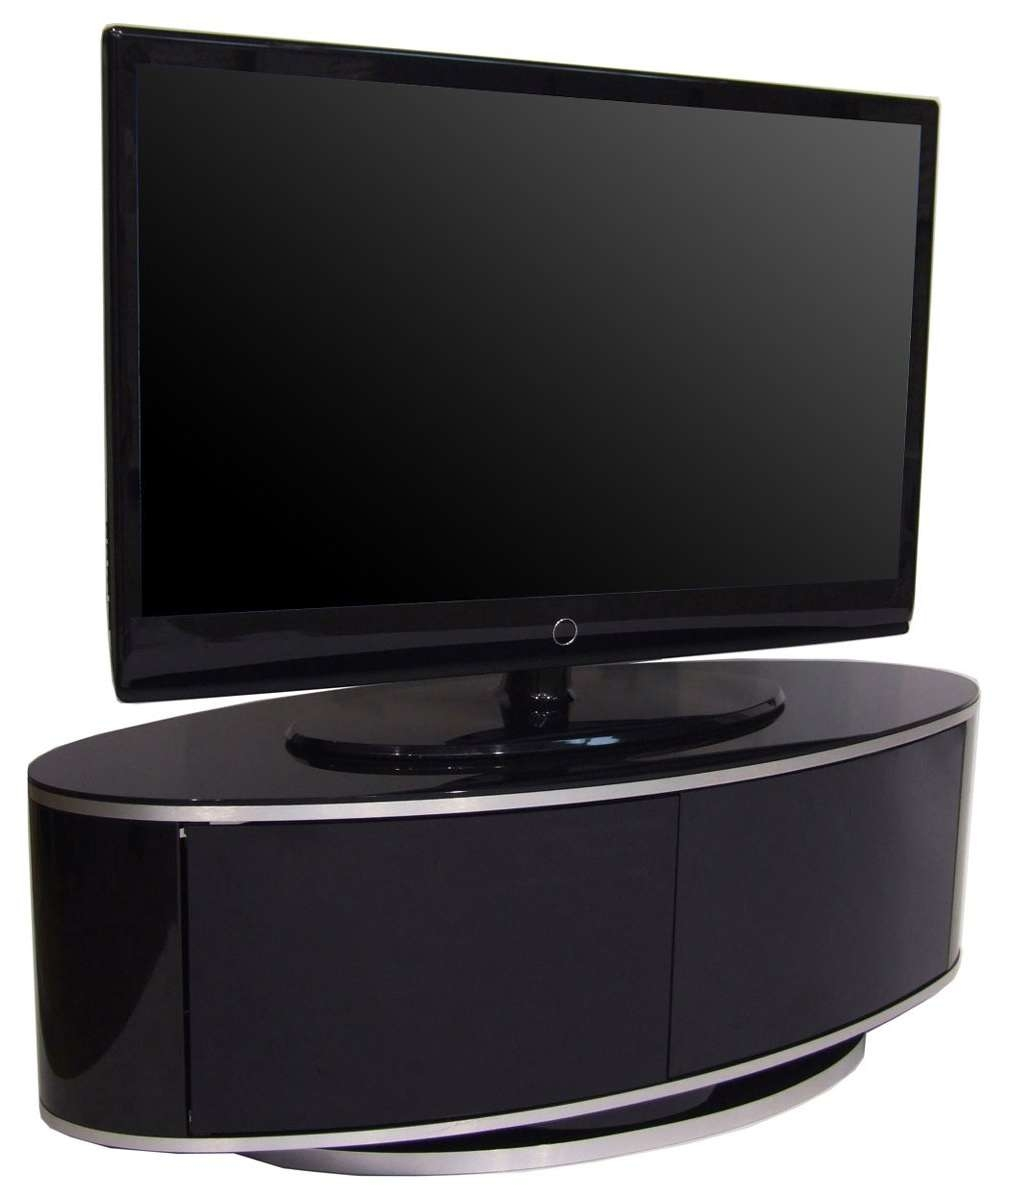 Luna High Gloss Black Oval Tv Cabinet Intended For Tv Stands Black Gloss (View 10 of 15)